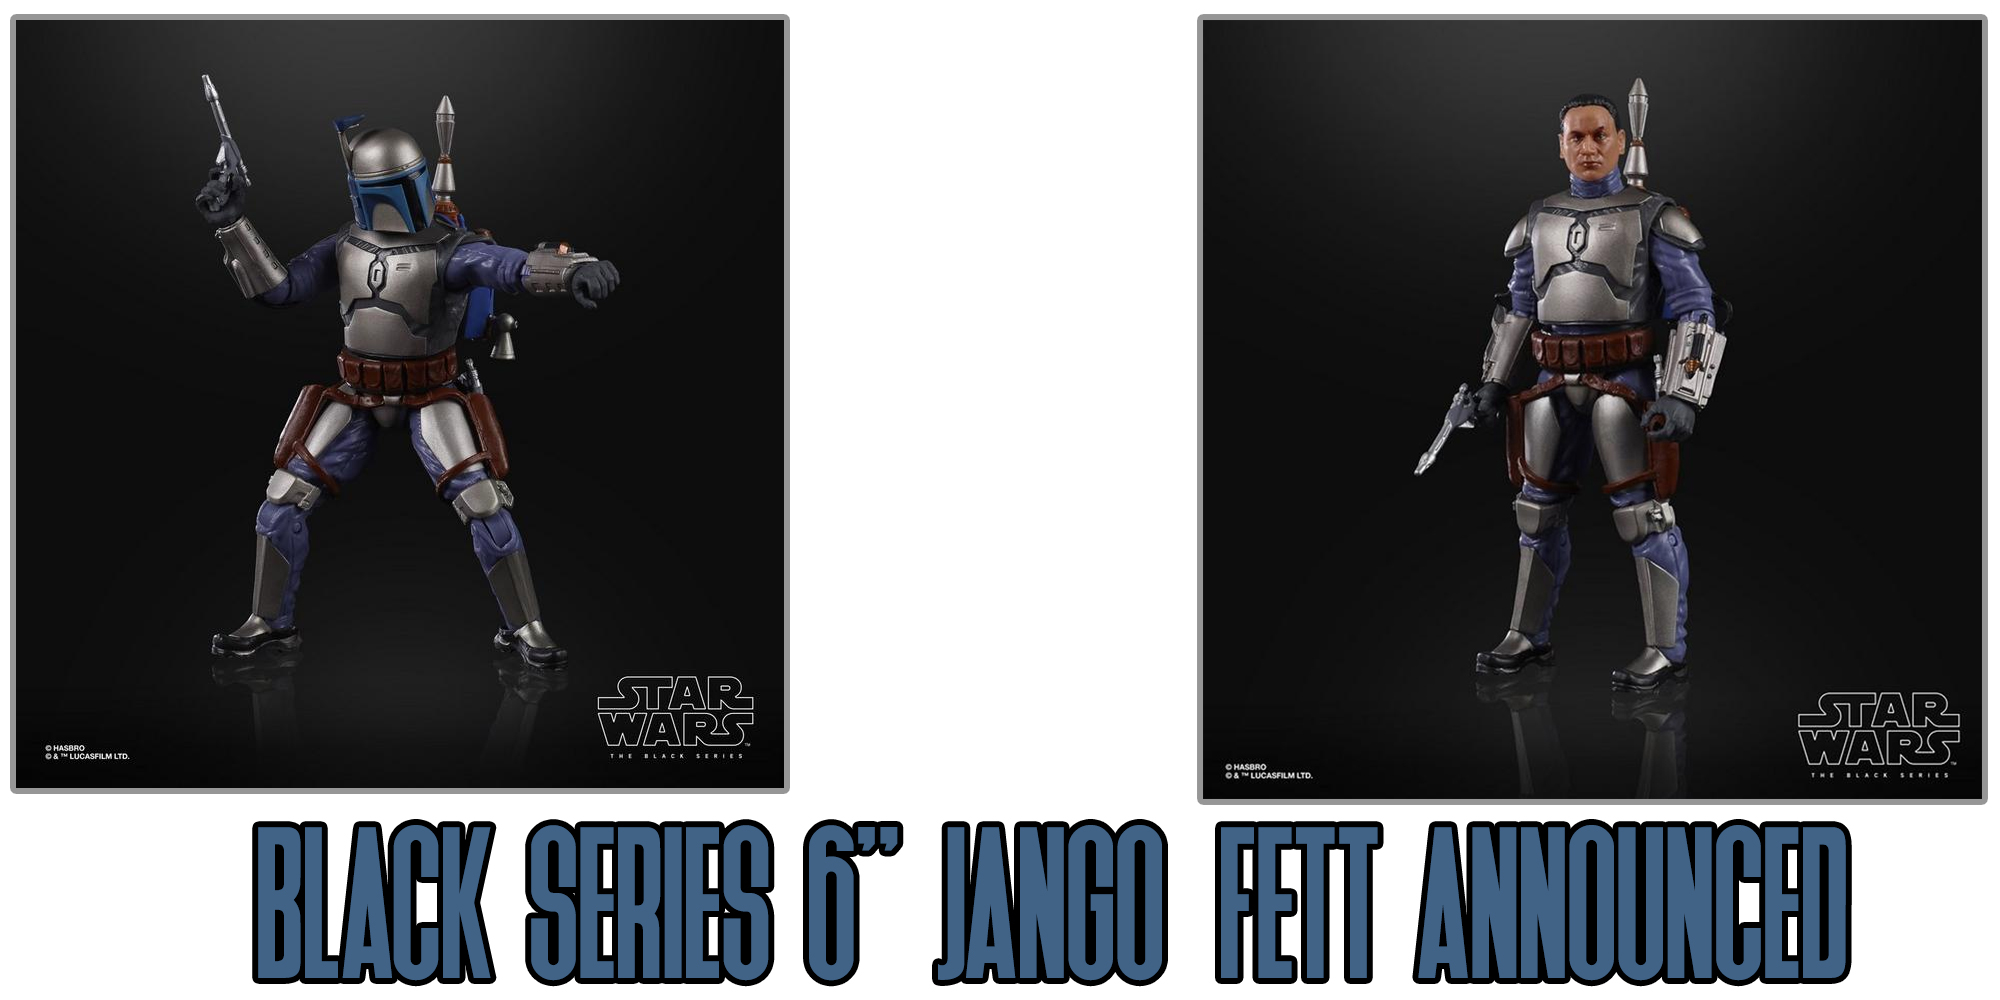 Black Series Jango Fett